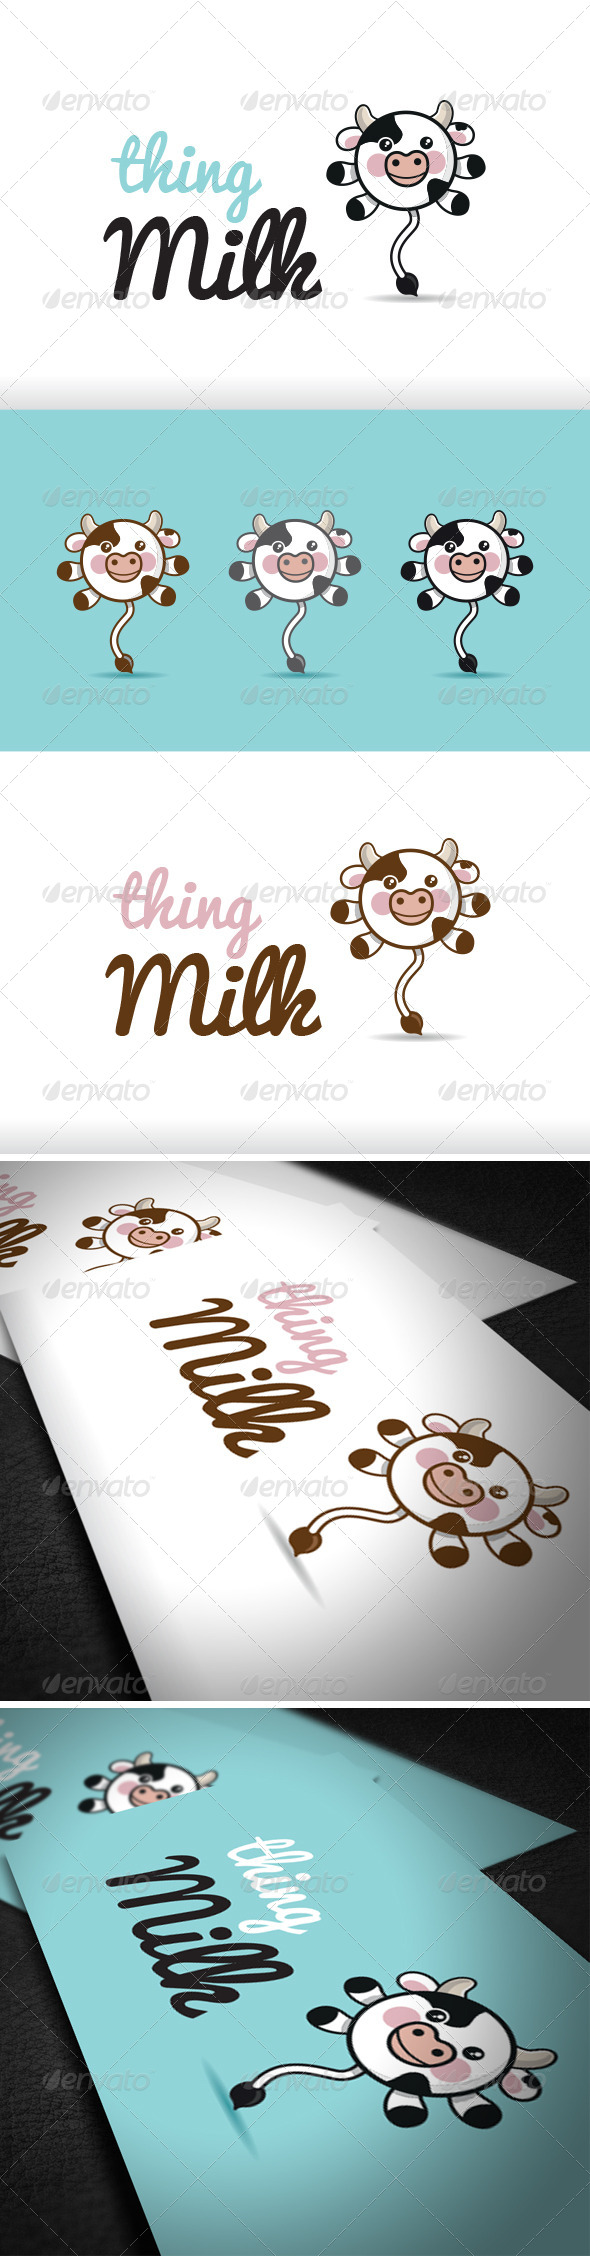 GraphicRiver Thing Milk Logo Template 6280474